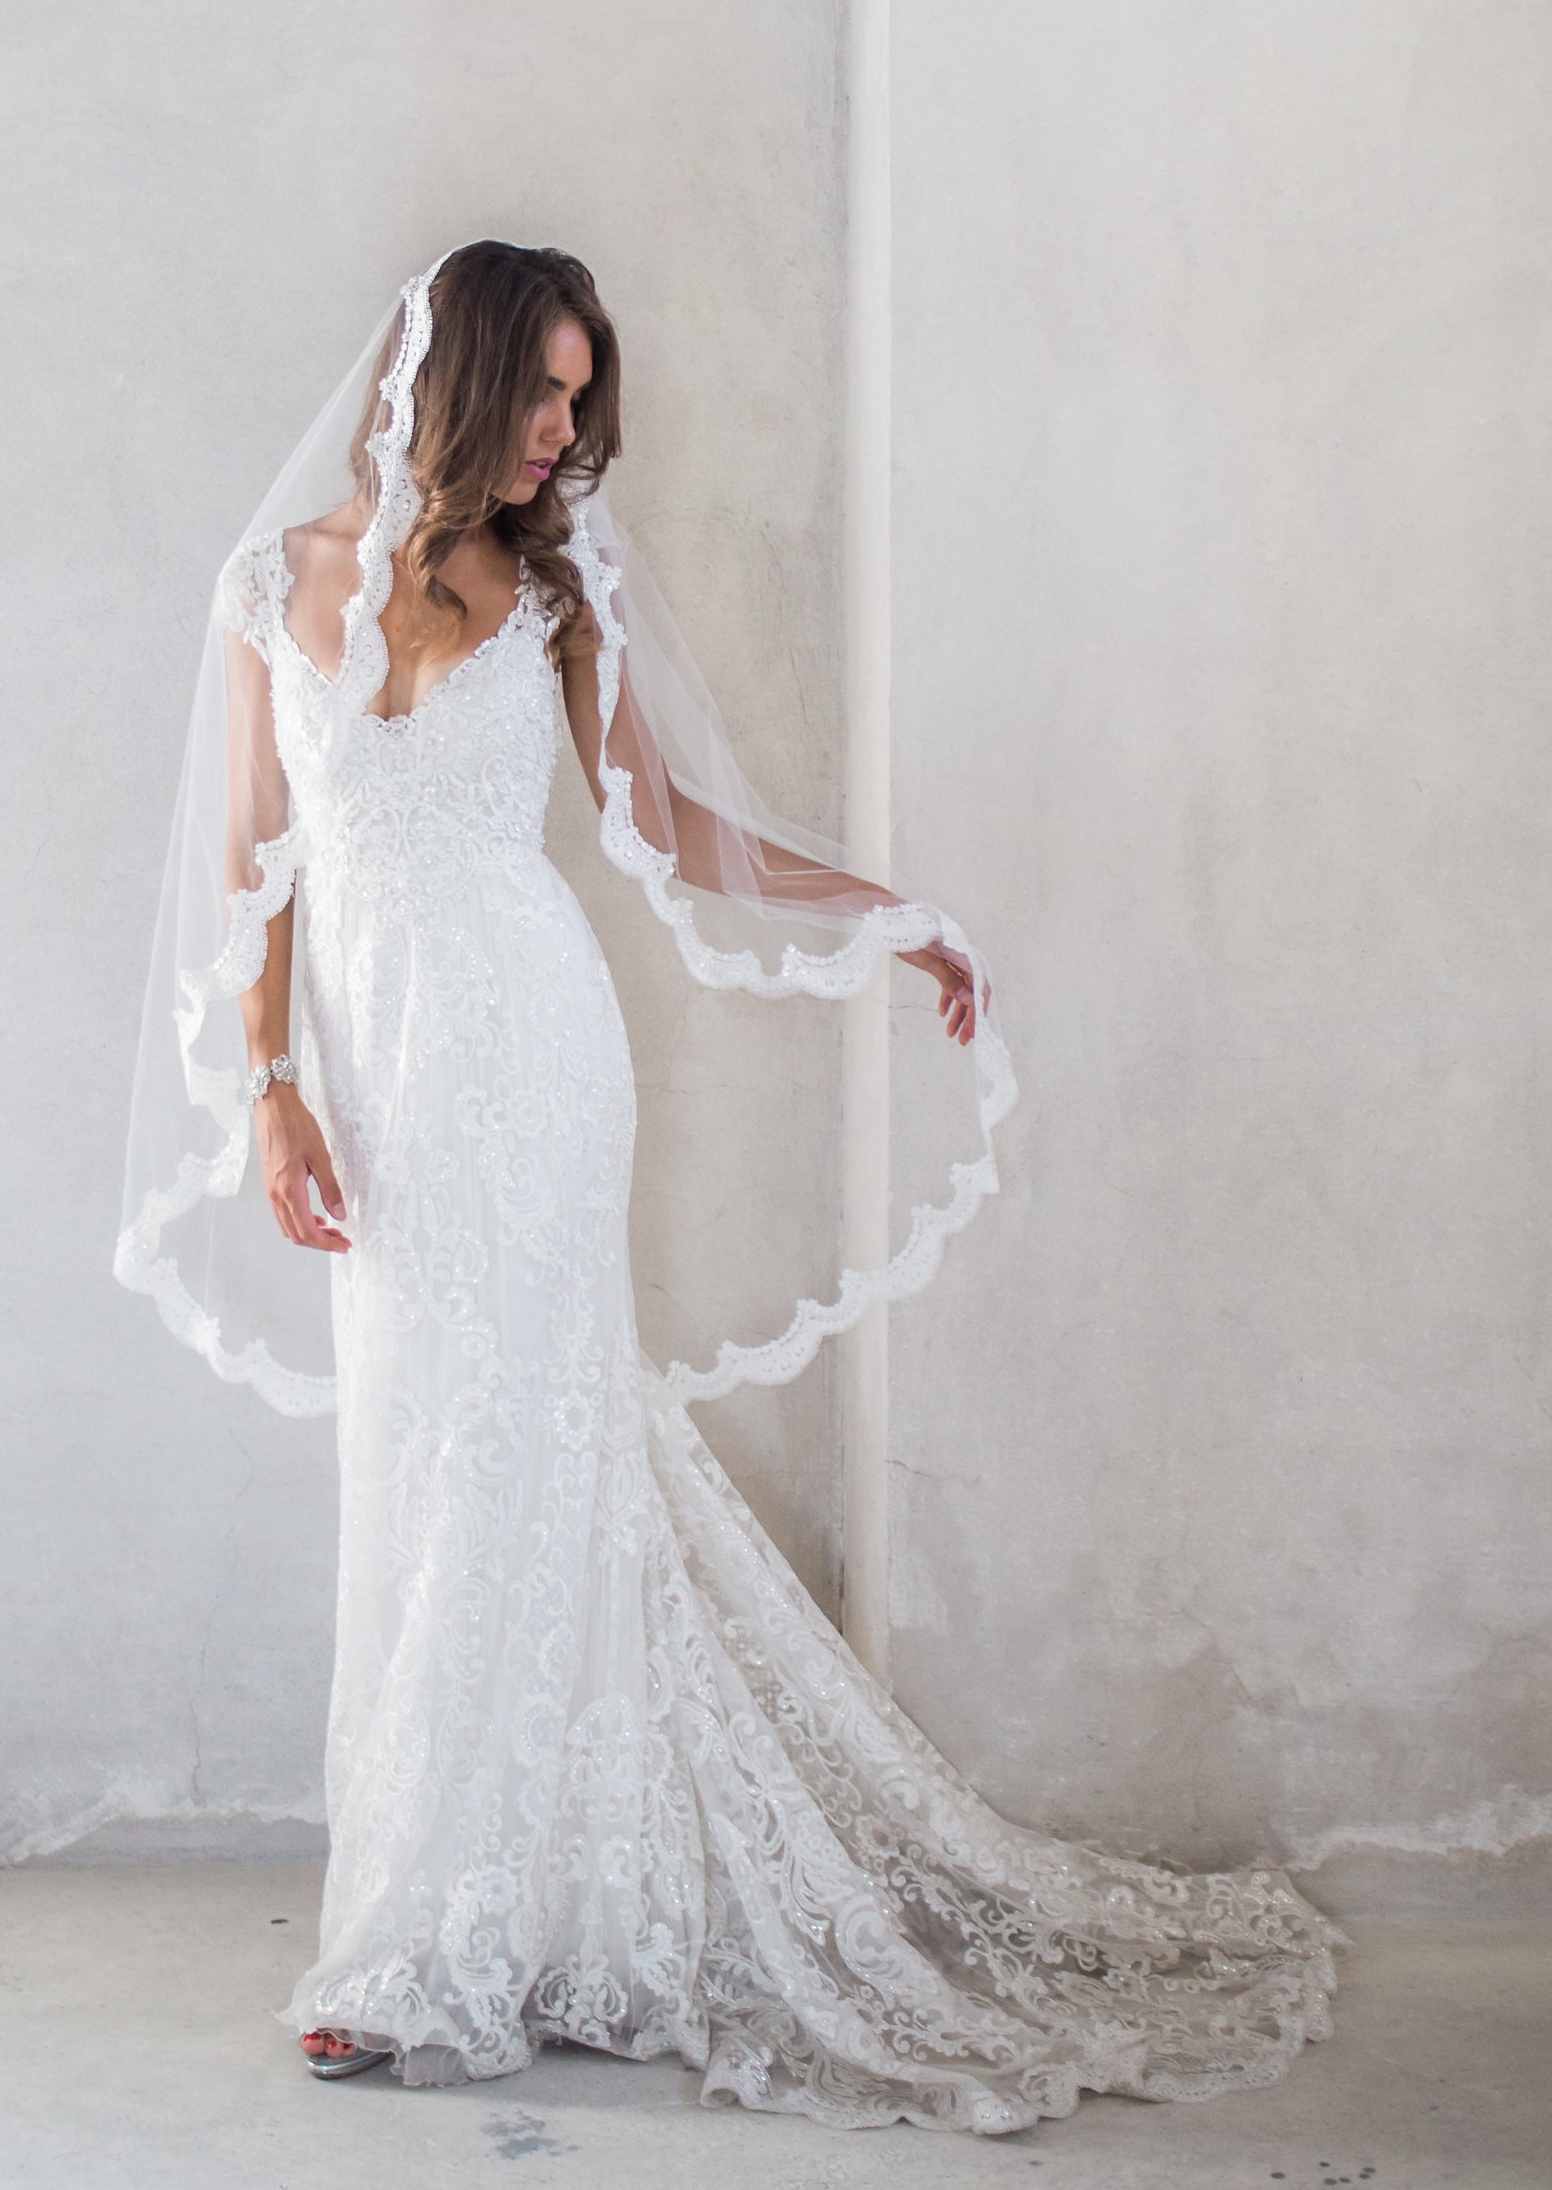 3. How long are your veils? Does my veil need to match my train? - Our veils are designed in Fingertip and Chapel lengtha:Fingertip veilVeil length = 135cm (53 inches)Fingertip veil with blusherVeil length = 140cm (55 inches)Blusher = 85cm (33 inches)Chapel veilVeil length = 215cm (85inches)Chapel veil with blusherVeil length = 215cm (85 inches)Blusher = 85cm (33 inches)While the majority of our brides choose the chapel length option, it will always depend on your dress, and your unique style! Your veil doesn't need to be the same length as the train of your dress, and because our veils are made from a very sheer tulle, all of the detail of your dress will still be visible and beautiful through the veil tulle.Pictured: The Alyssa Dress, styled with the Alyssa Veil (Fingertip Length, No Blusher) Photo by White Images